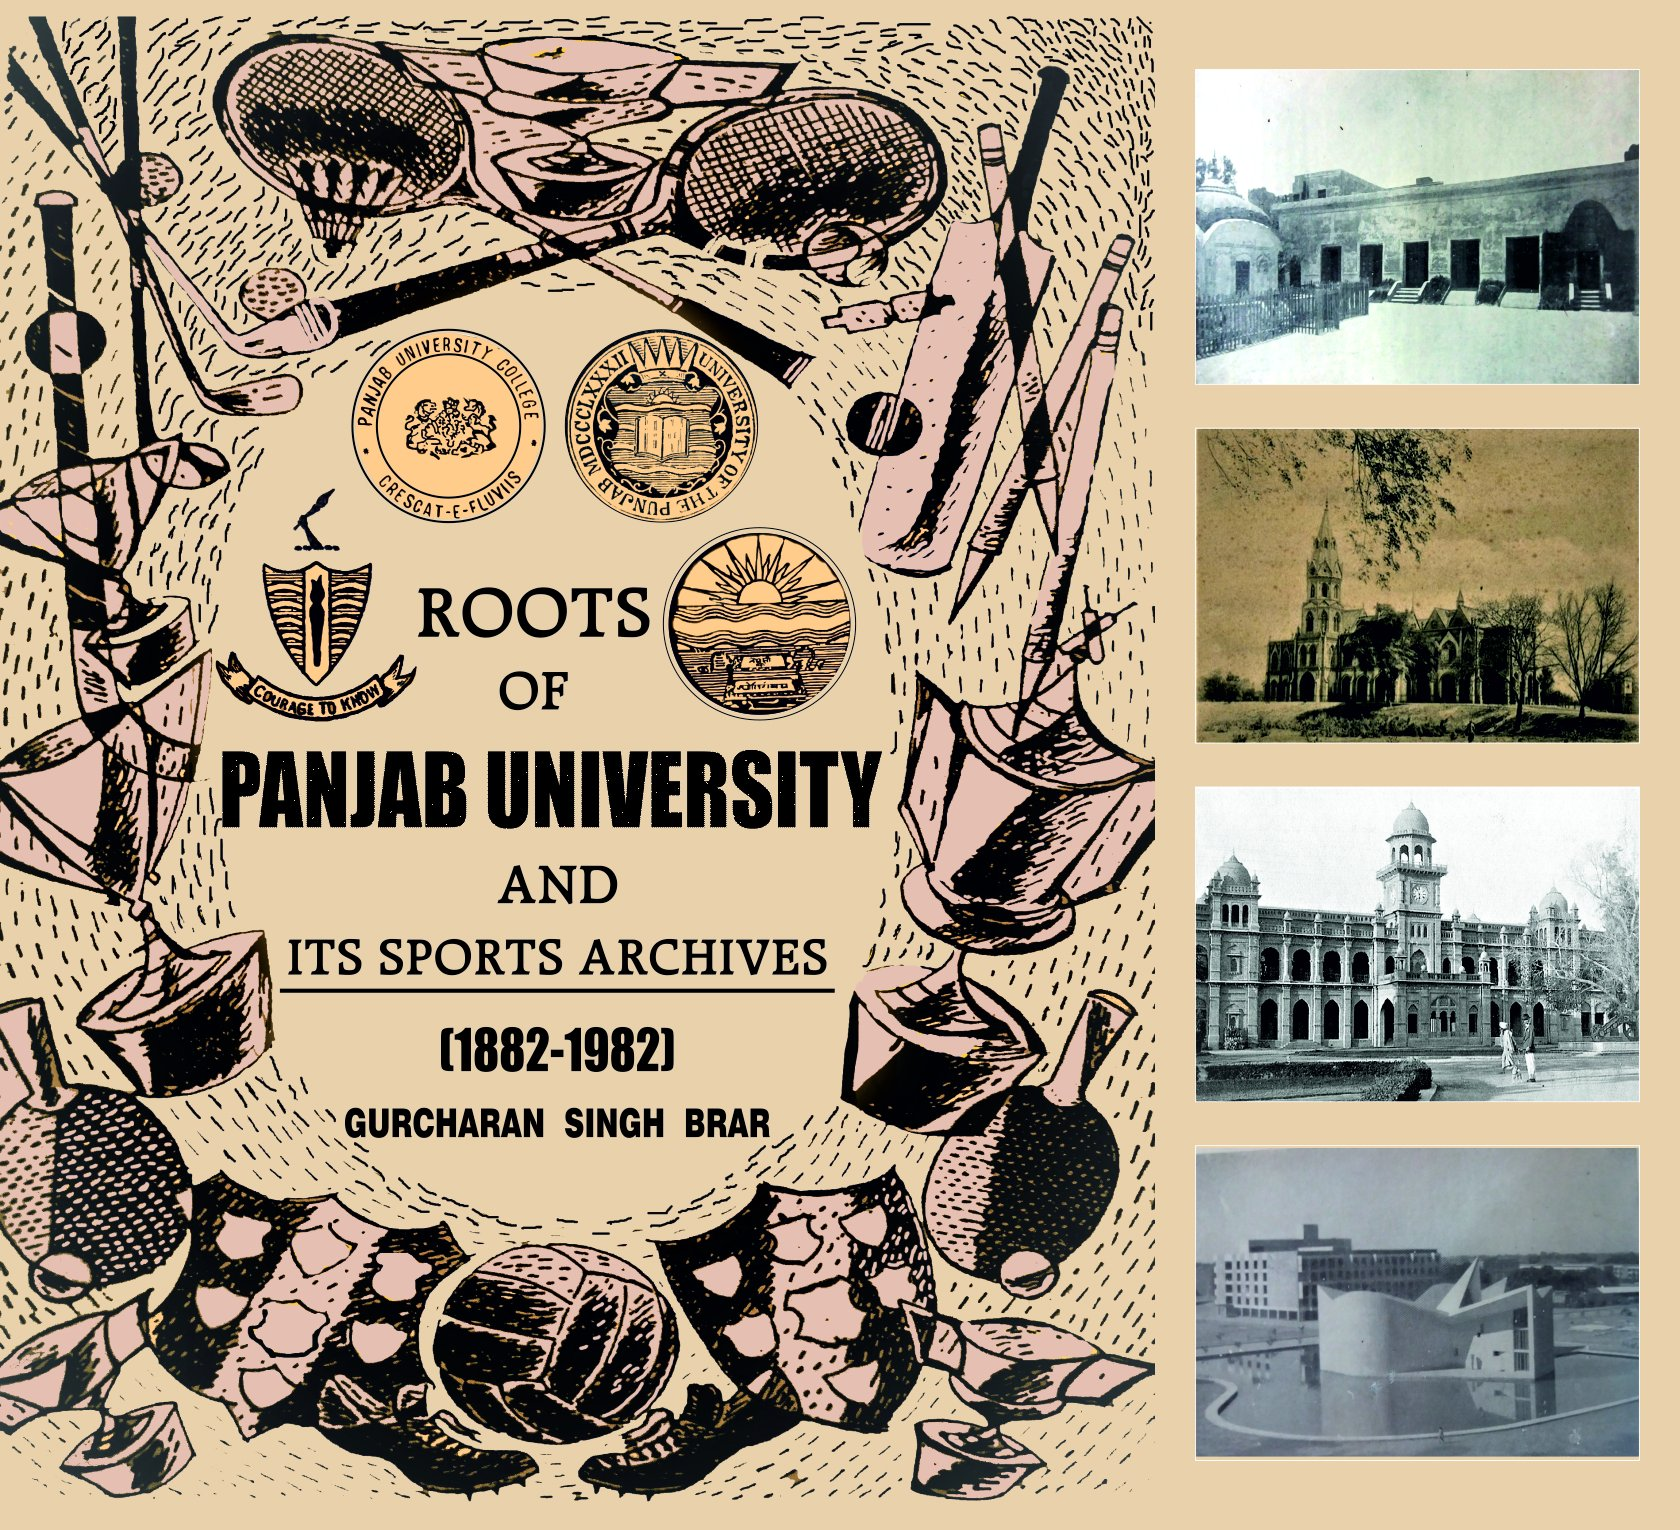 Roots of Panjab University and Its Sports Archives (1882-1982) by Gurcharan Singh Brar (Mohindra Publishing House) Hardcover – 2017